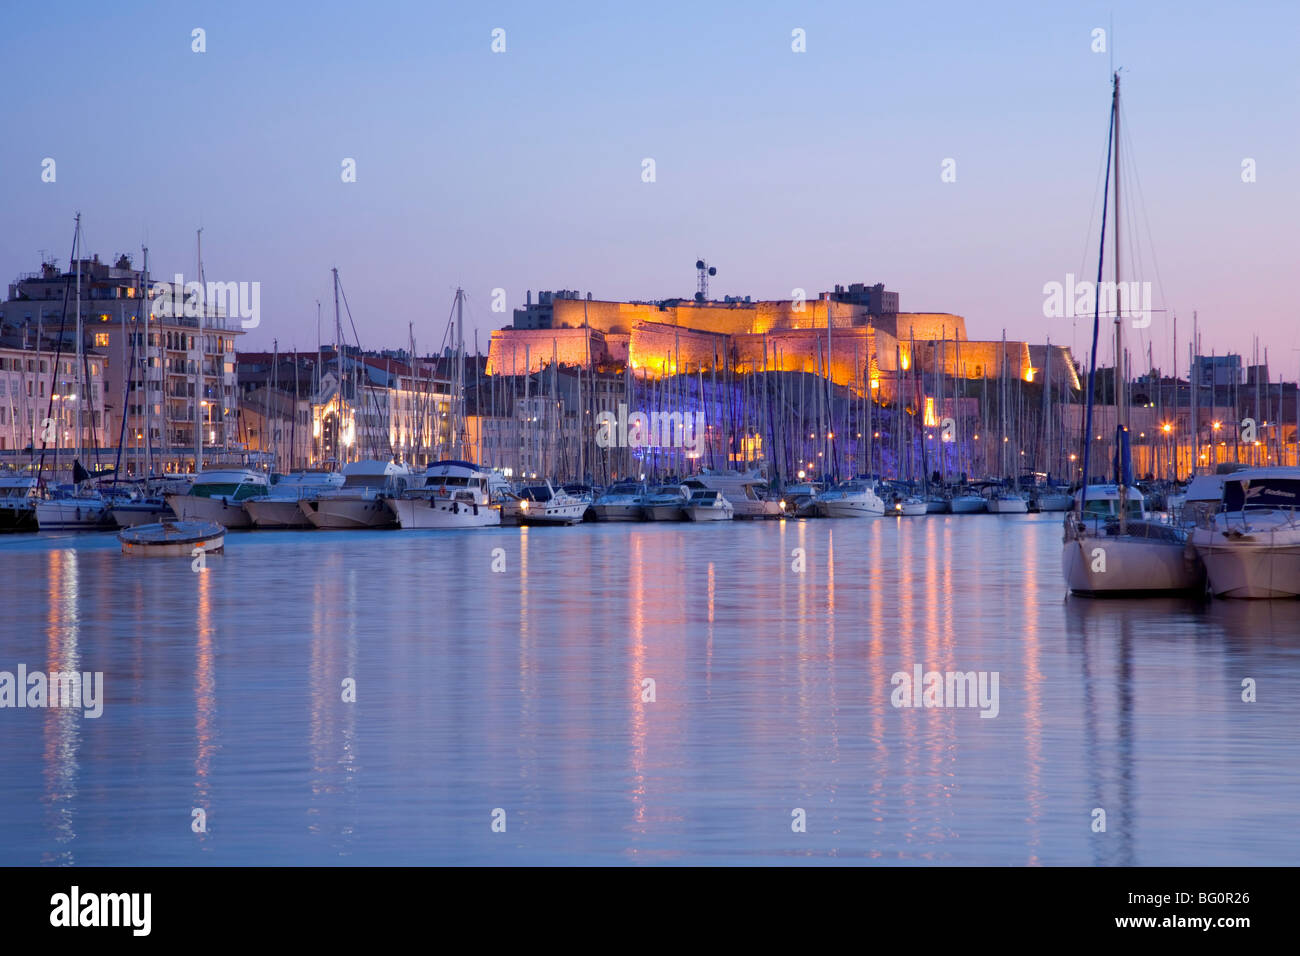 View across the Vieux Port to illuminated Fort St.-Nicolas at dusk, Marseille, Bouches-du-Rhone, Cote d'Azur, - Stock Image